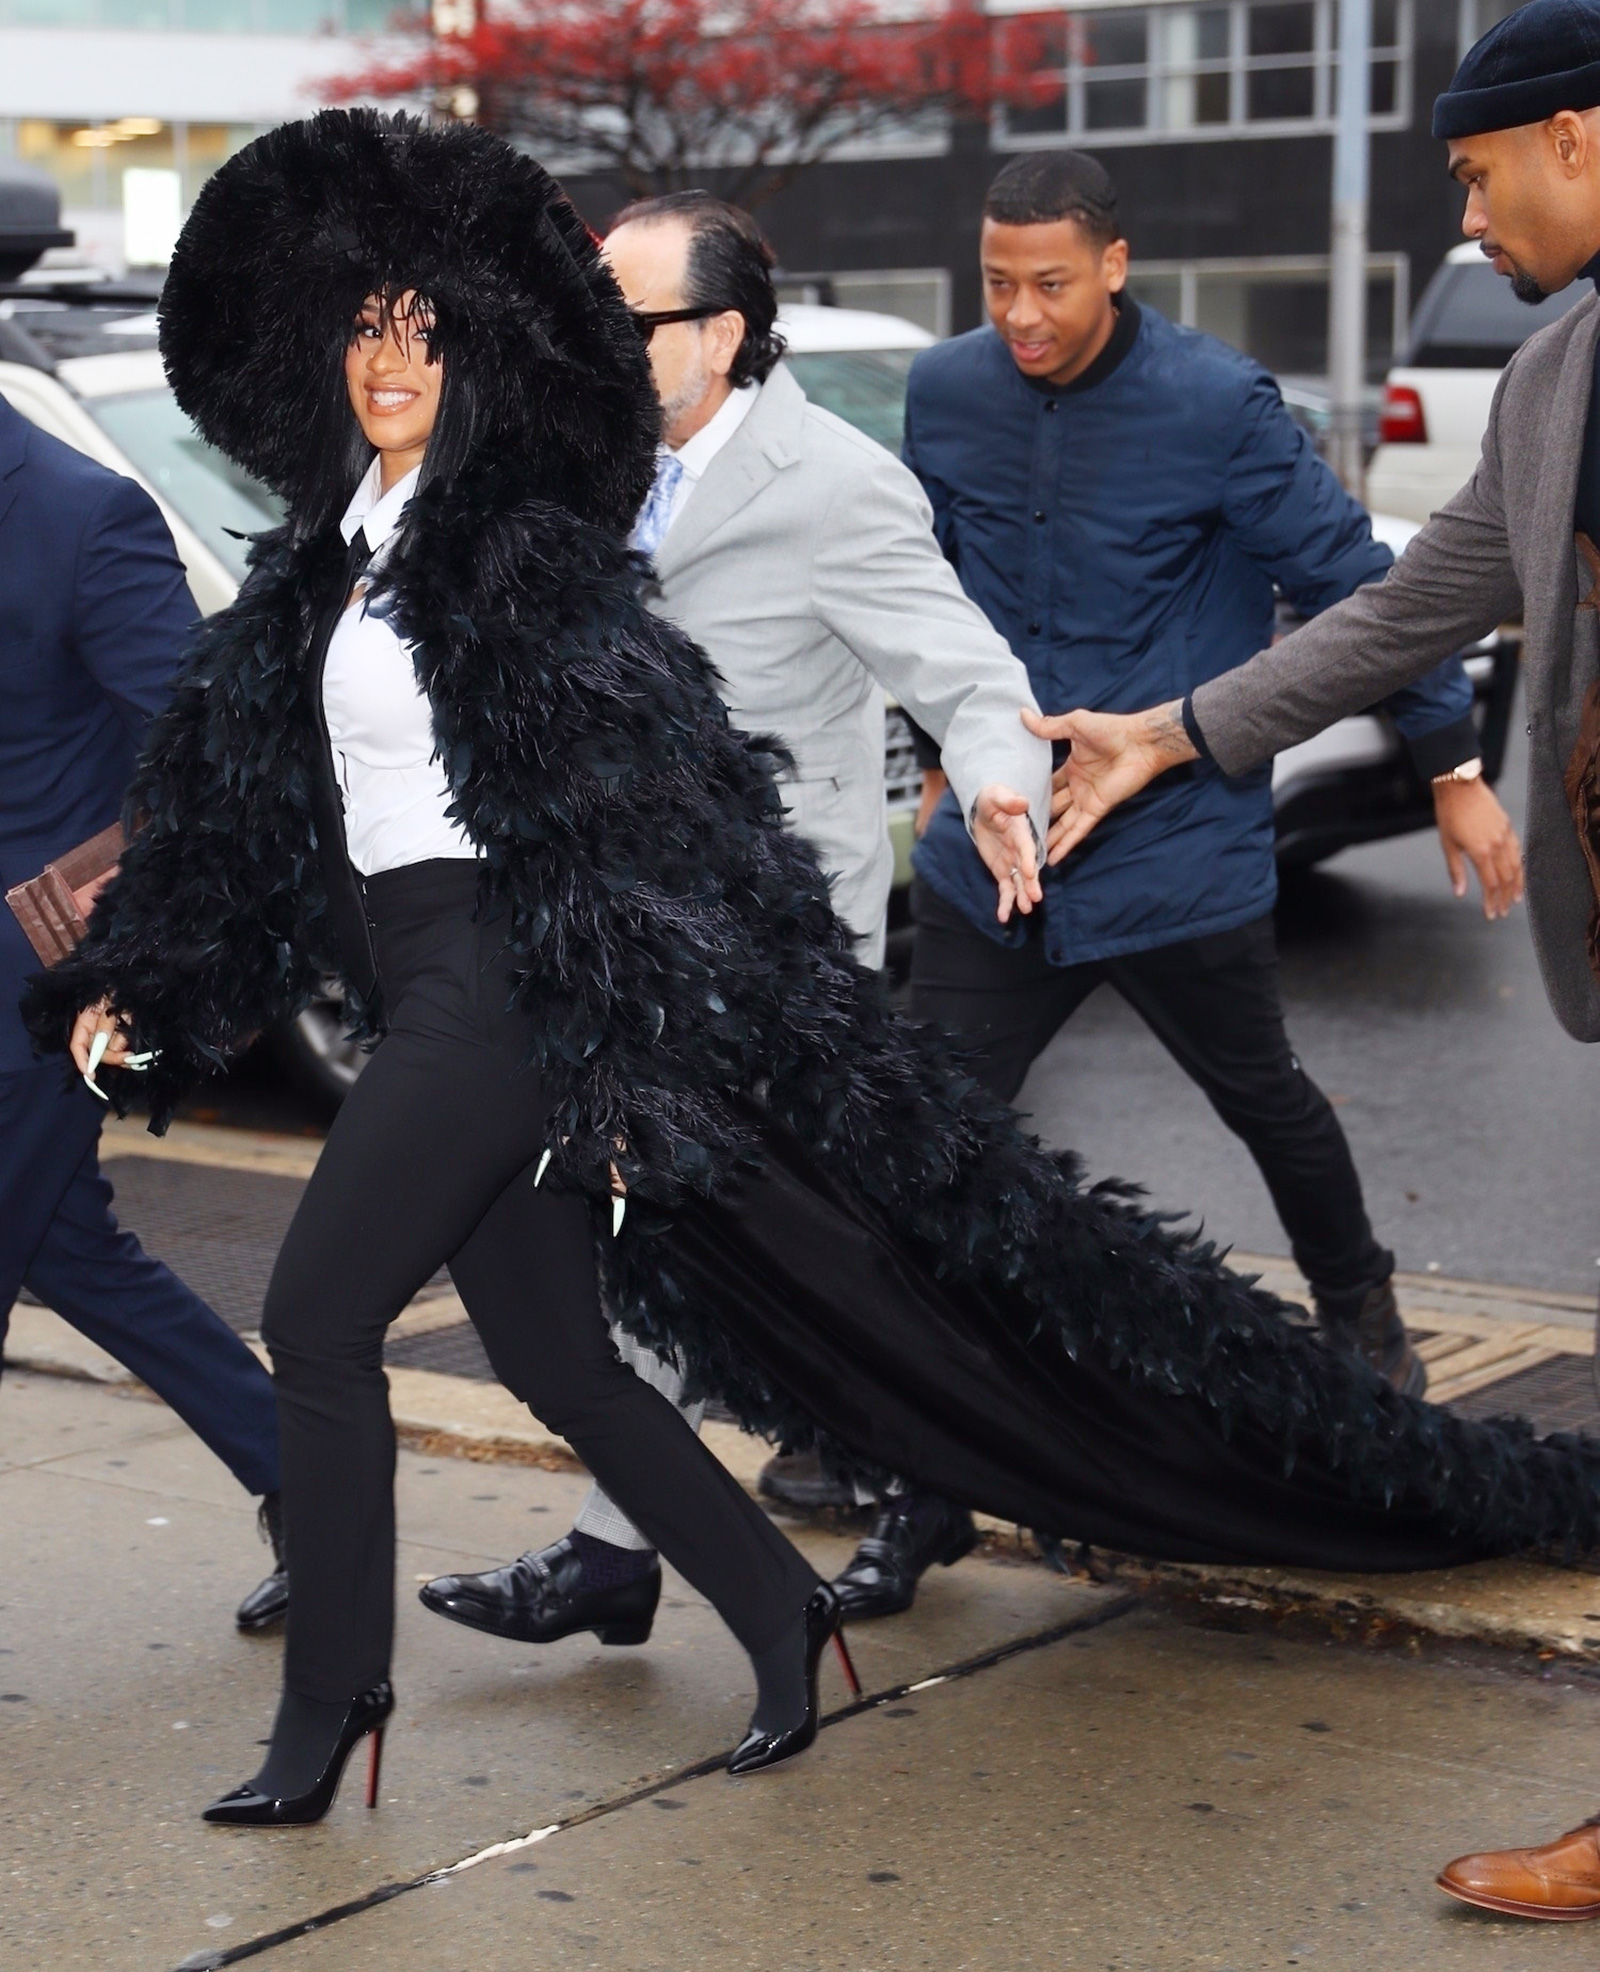 Cardi B makes an extreme fashion statement as she arrived for court in Queens this morning.